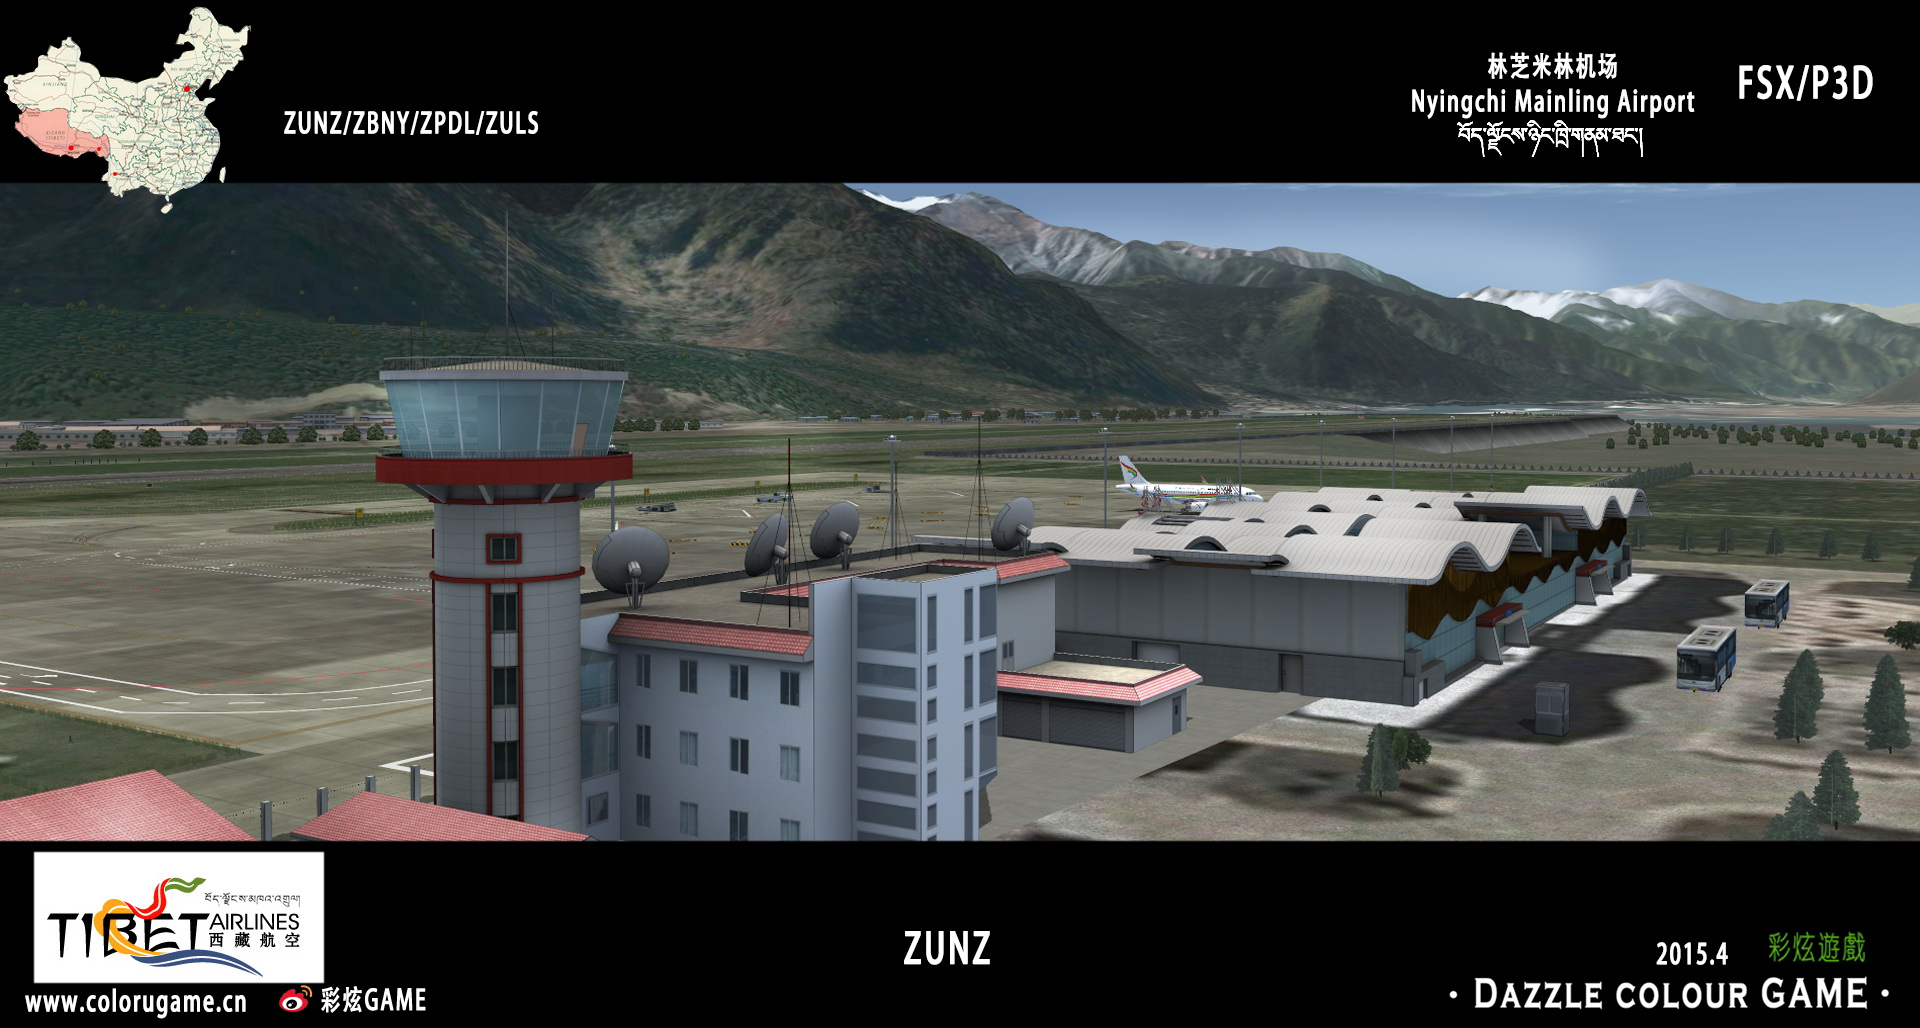 DAZZLE COLOUR GAME - NYINGCHI MAINLING AIRPORT ZUNZ 2015.04 FSX P3D